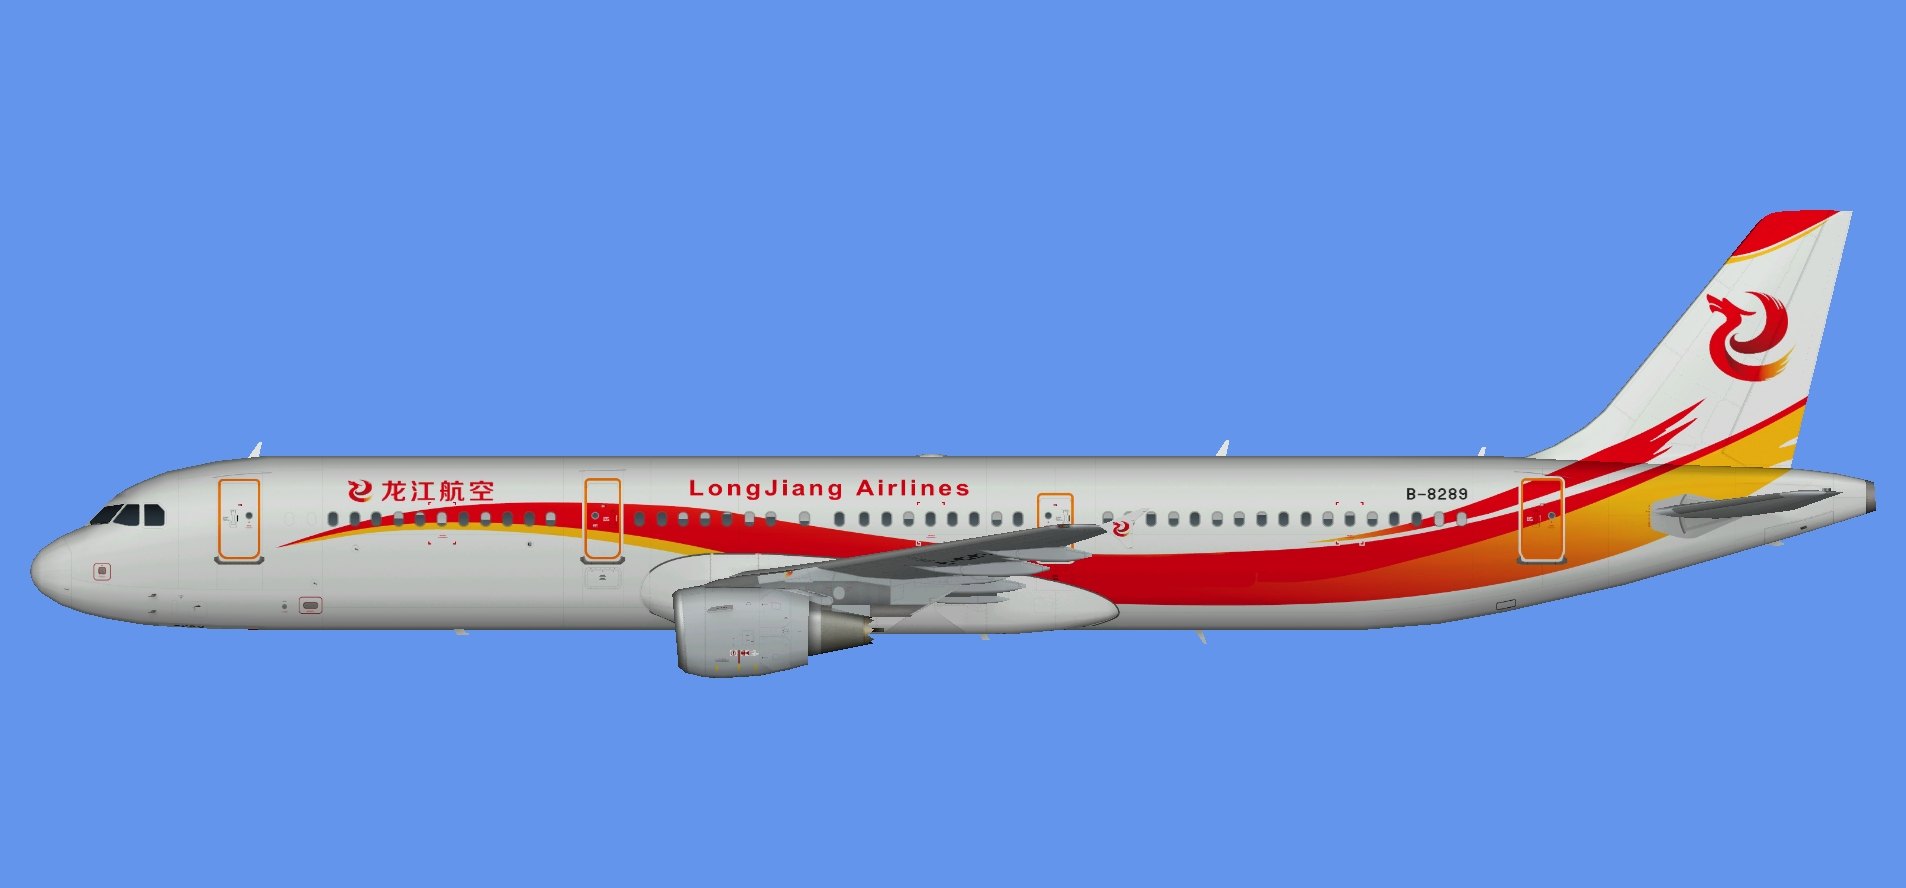 Longjiang Airlines Airbus A321